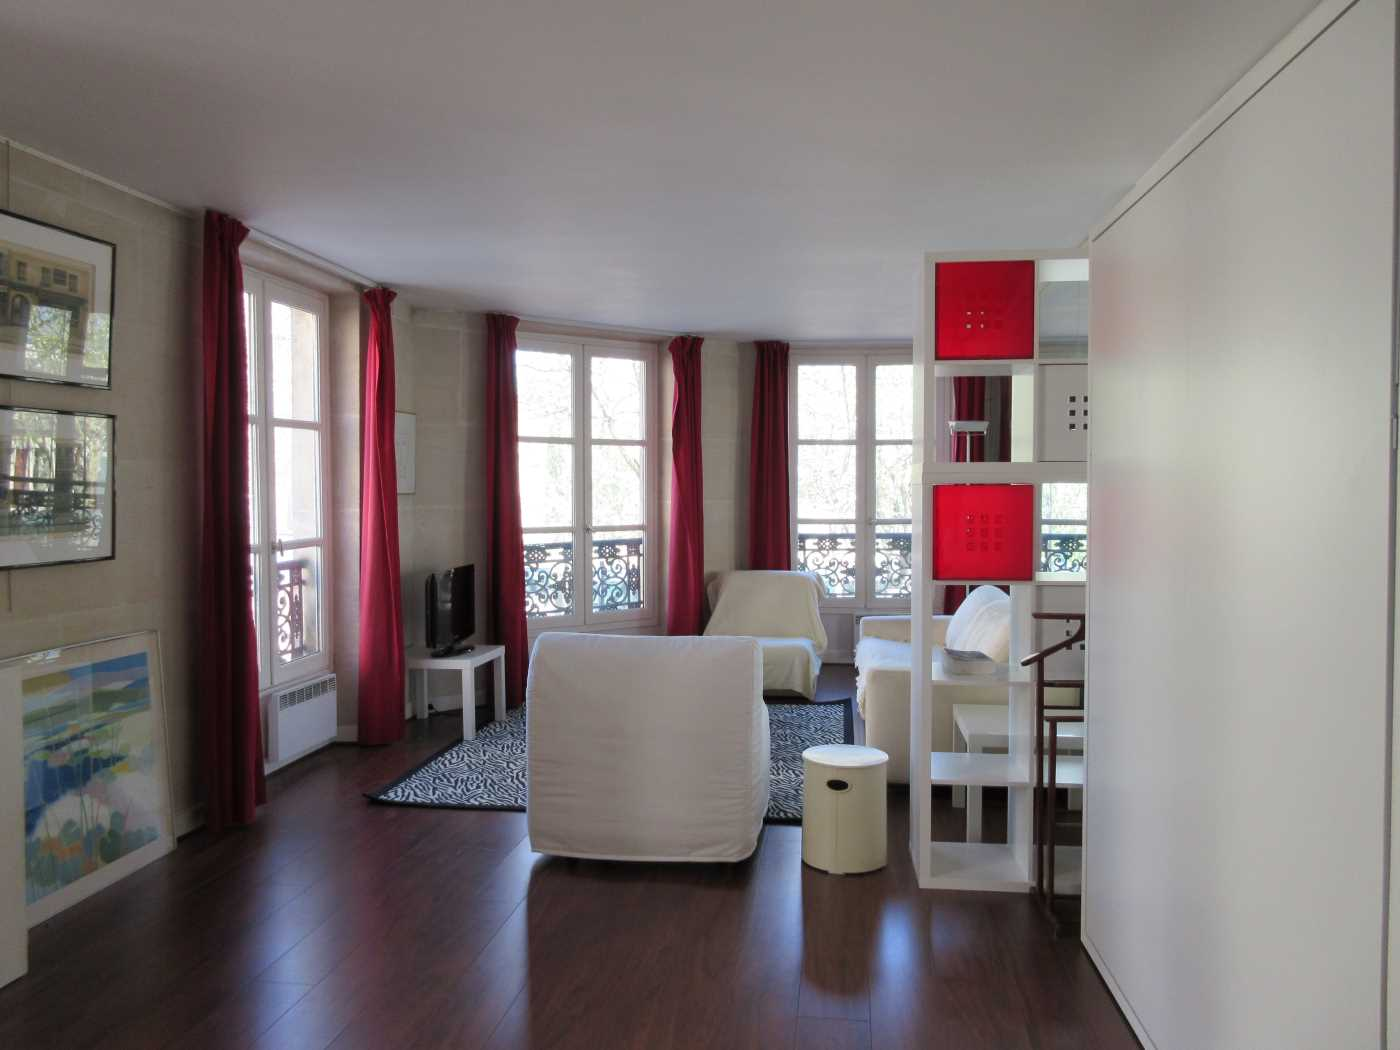 Location appartement meubl paris 5 cattalan johnson for Location immobilier atypique paris